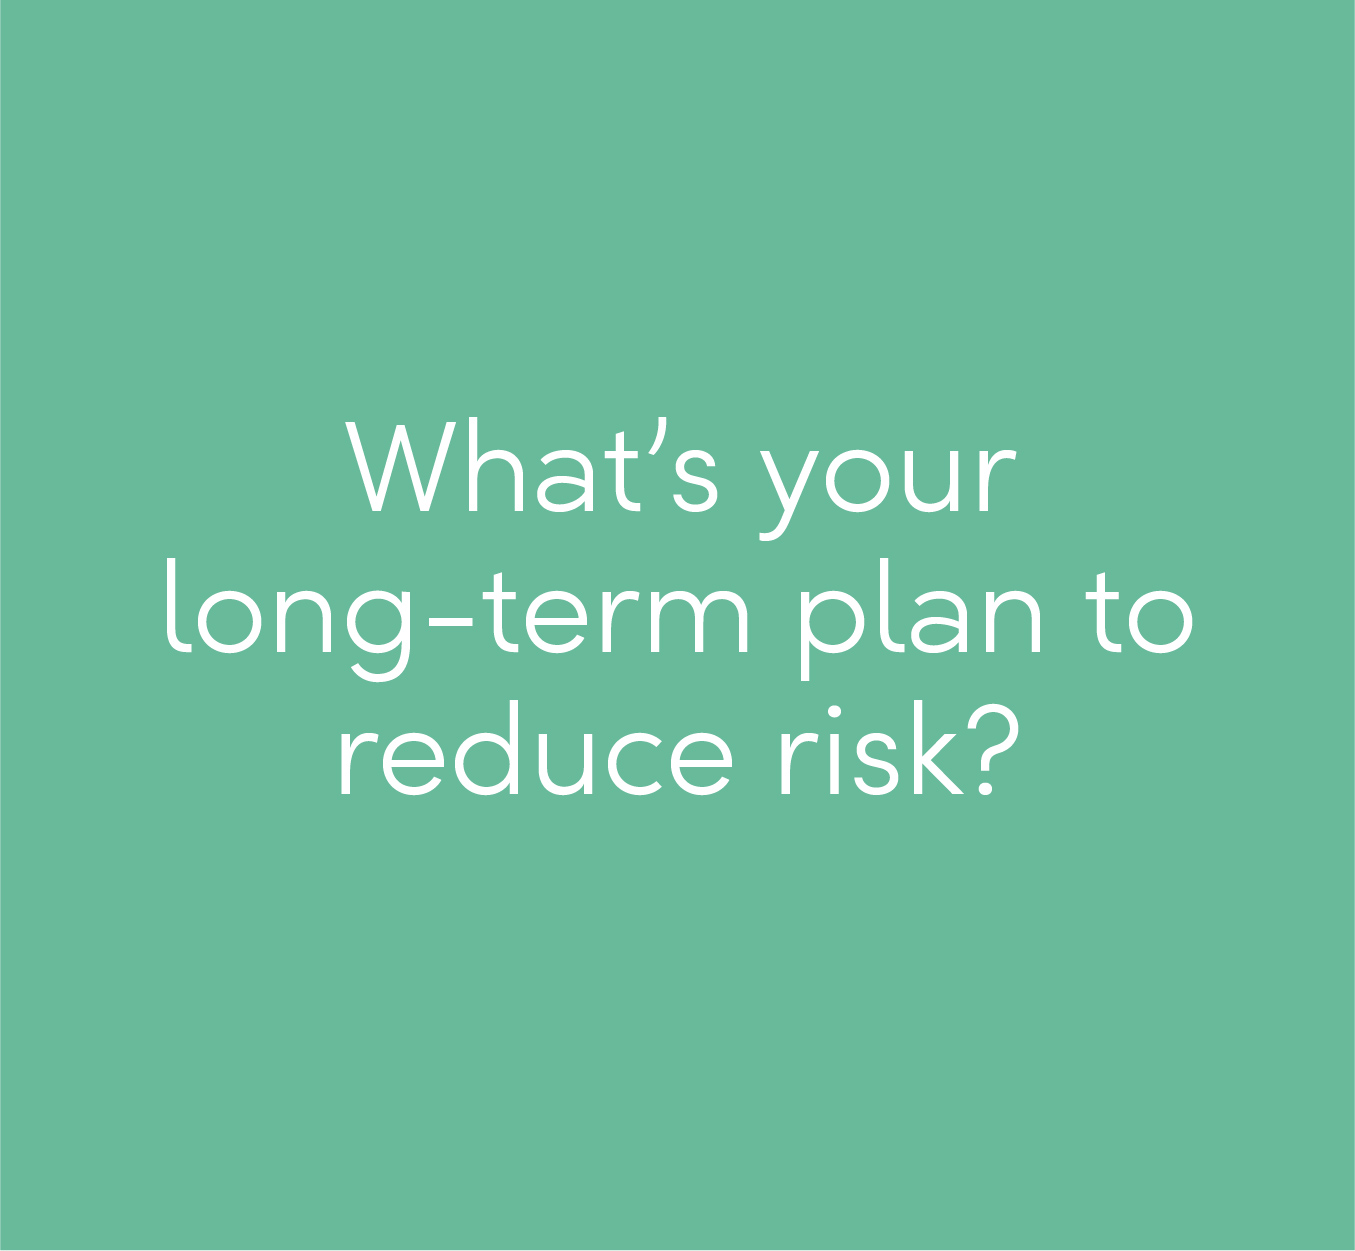 What's your long-term plan for reducing risk?